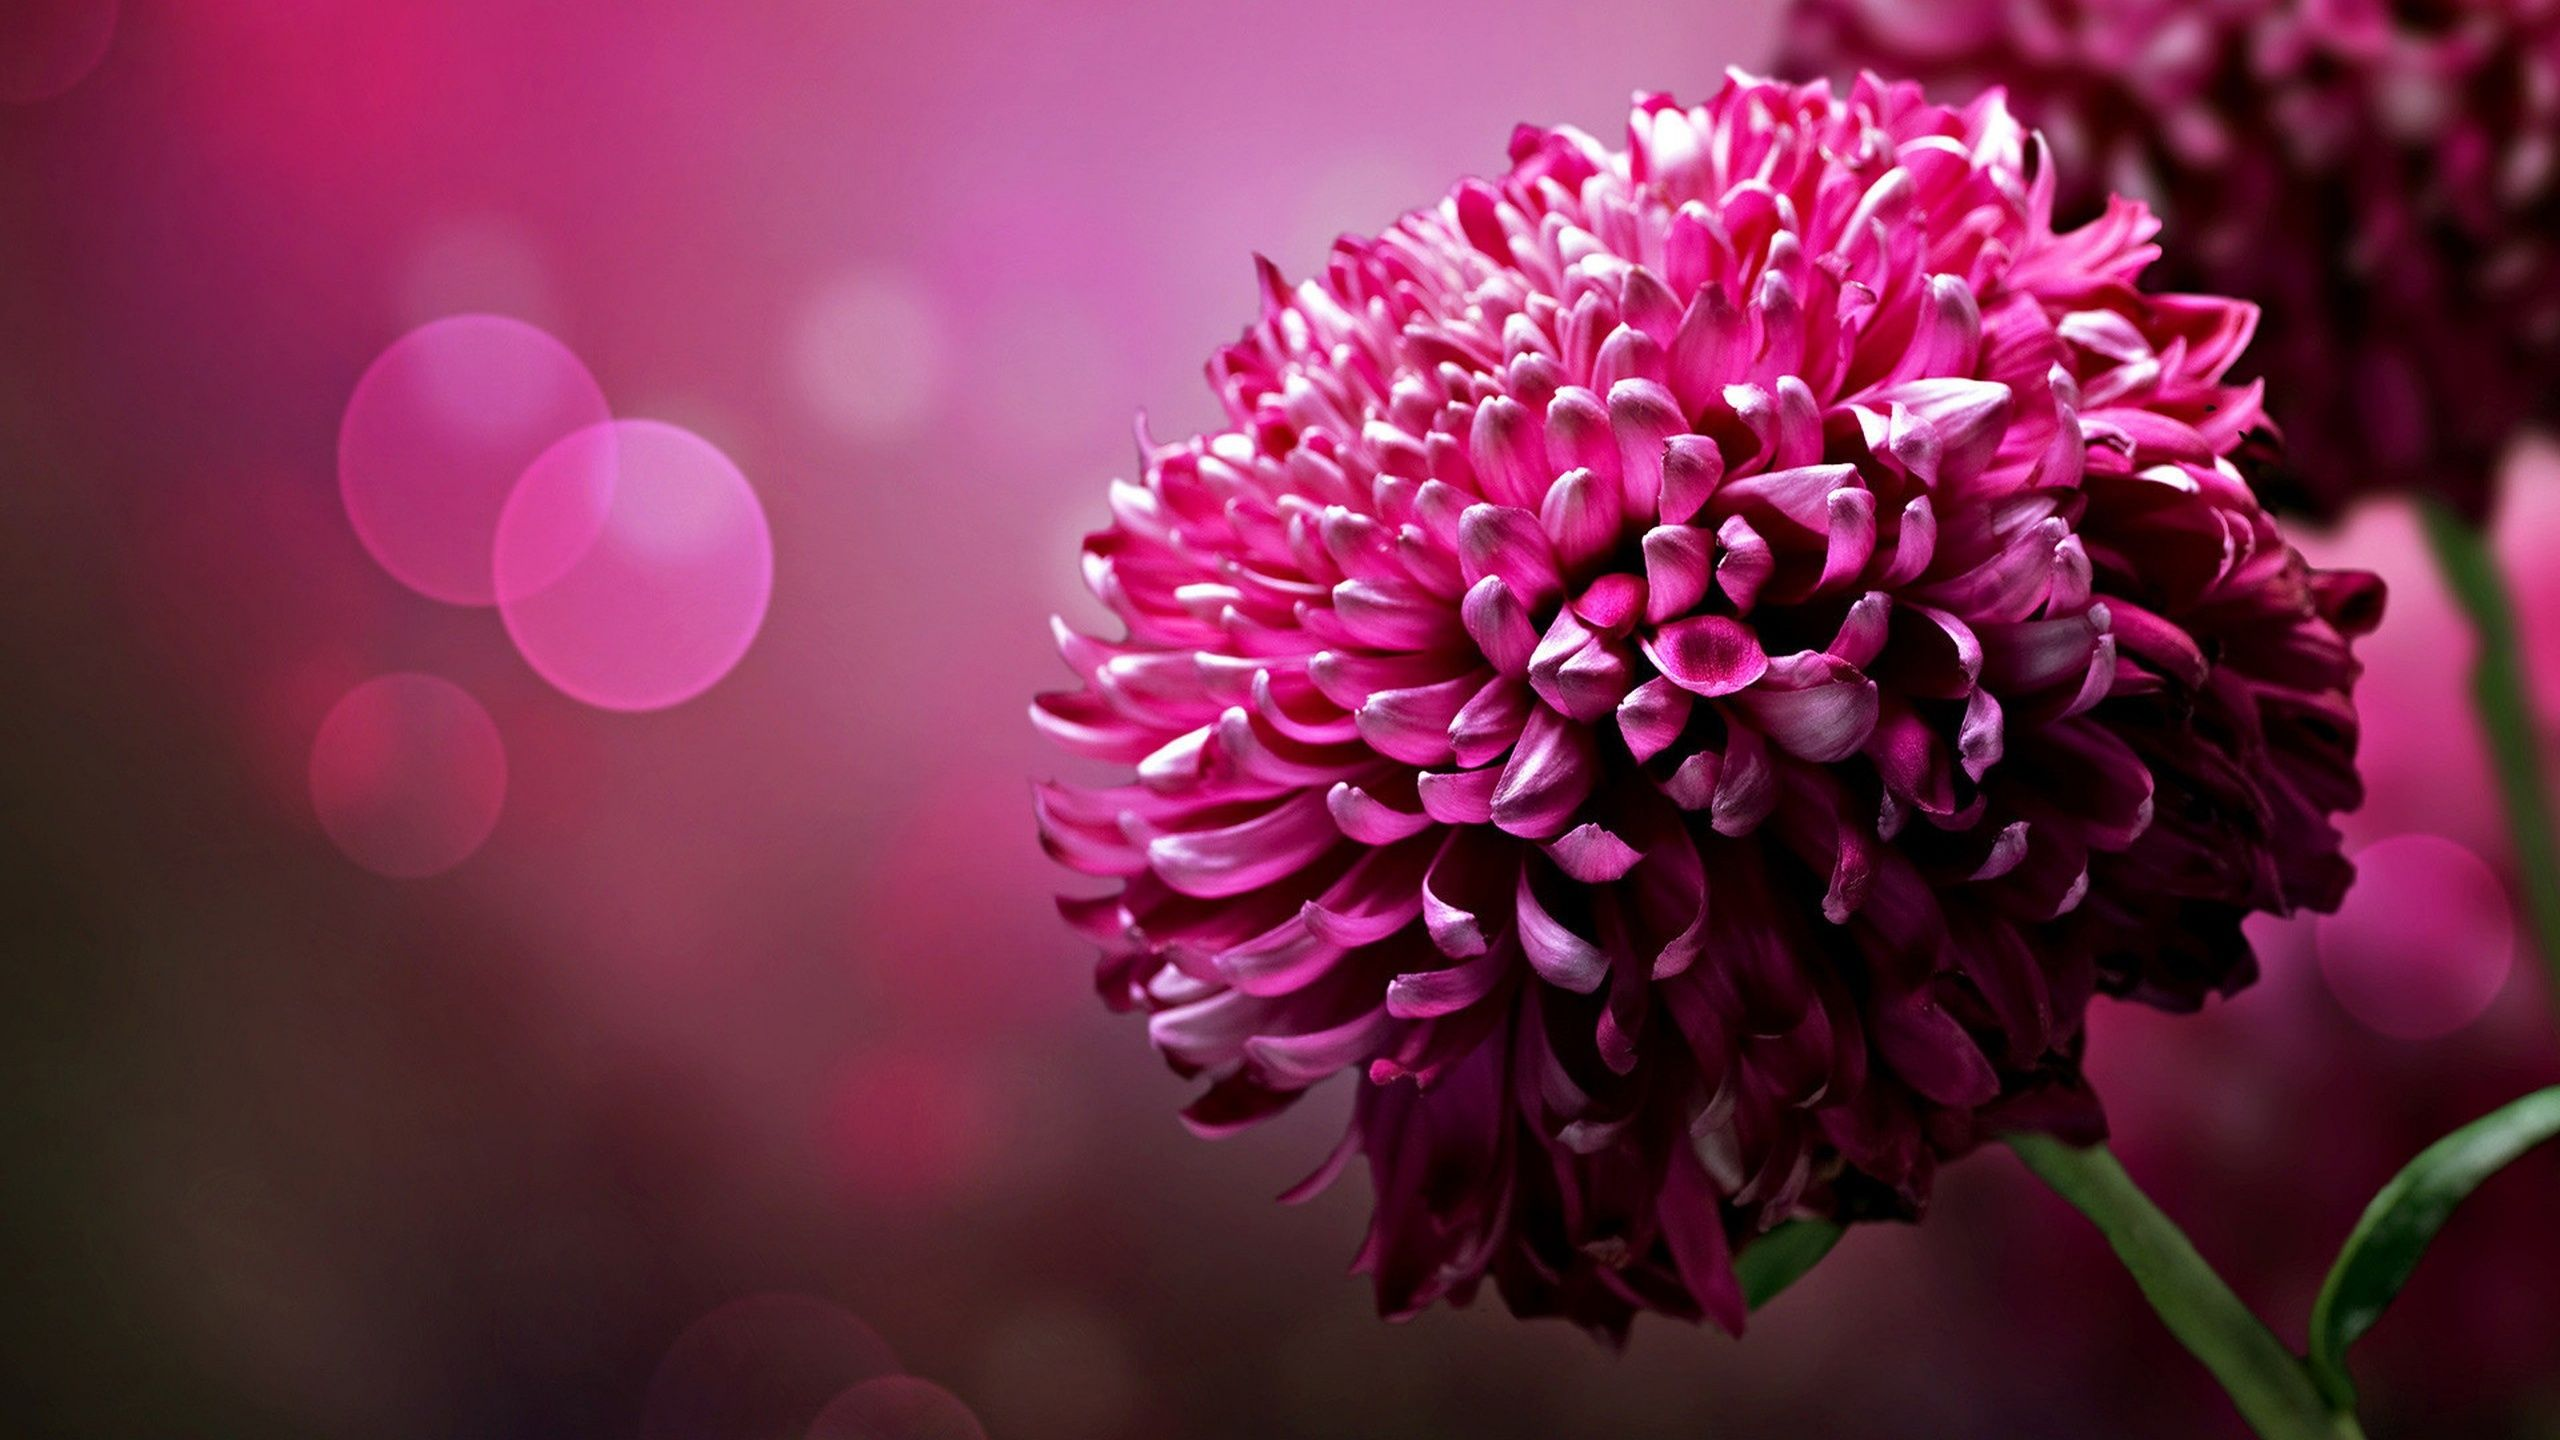 Pink Flowers Wallpaper Live Android Apps On Google Play 768480 Pink